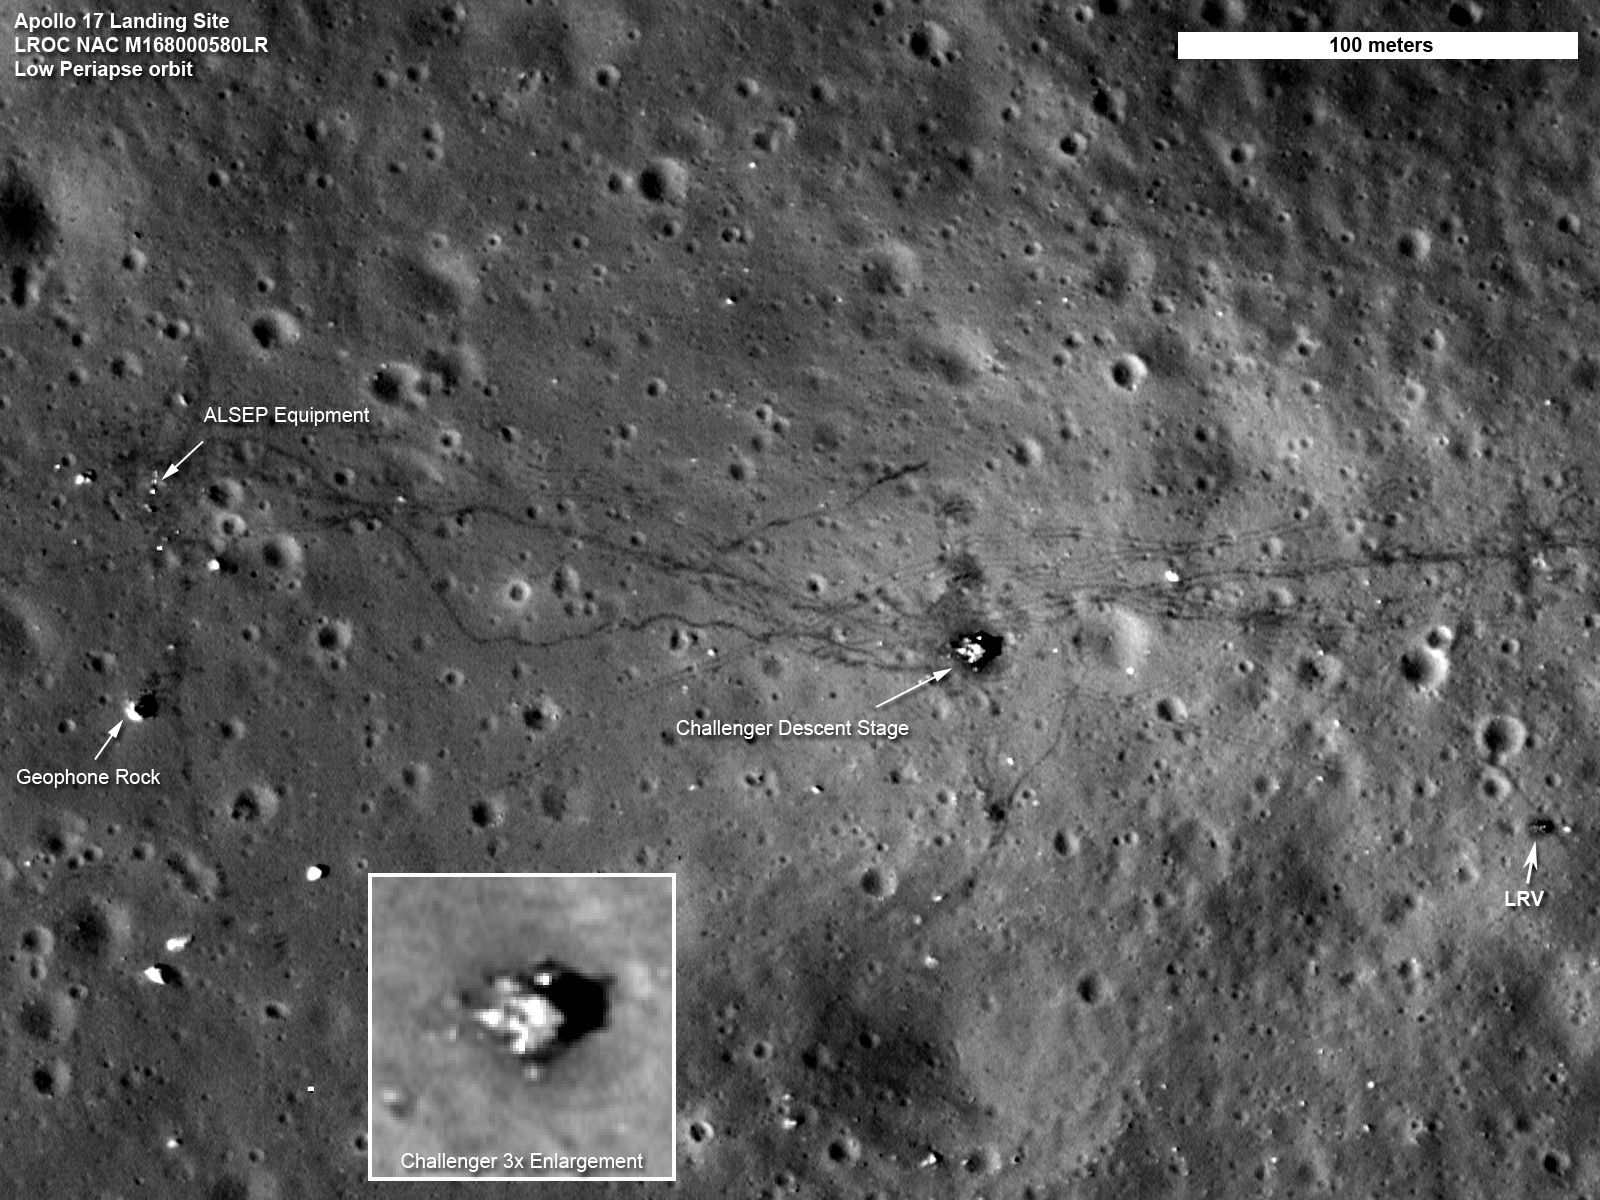 apollo 11 landing site earth - photo #13